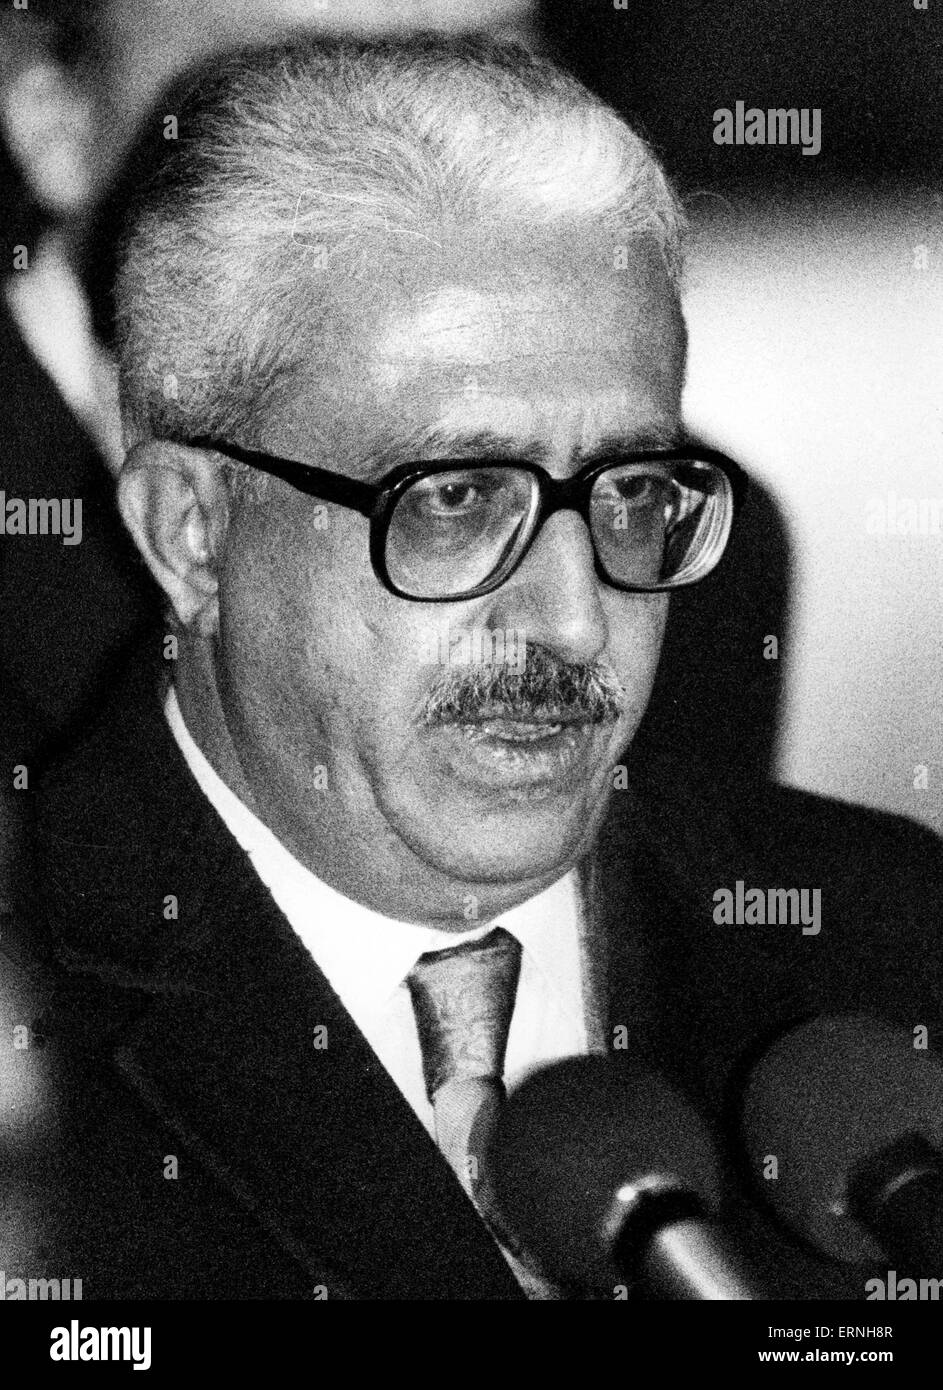 June 5, 2015 - Tariq Aziz, Saddam Hussein's deputy prime minister and close adviser has died at a hospital in - Stock Image